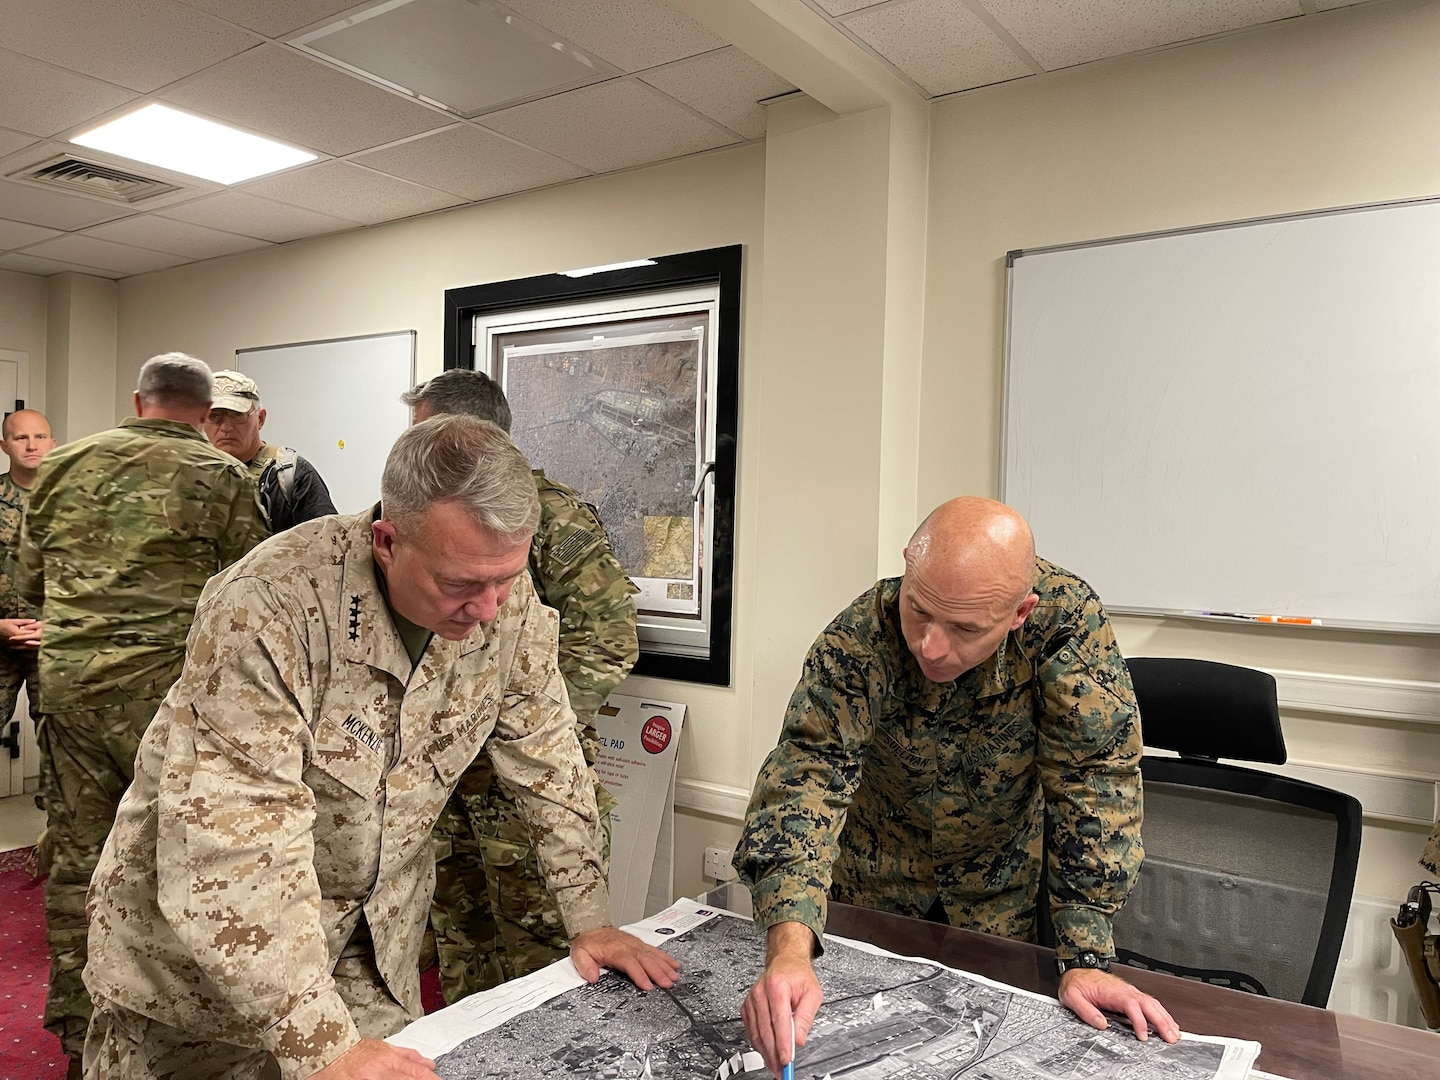 U.S. Marine Corps Gen. Frank McKenzie, the commander of U.S. Central Command, directs operations with U.S. Marine Corps Brig. Gen. Farrell J. Sullivan, the commander of the Naval Amphibious Task Force 51/5th Marine Expeditionary Brigade, at Hamid Karzai International Airport, Afghanistan on August 17, 2021. (U.S. Navy photo by Capt. William Urban)